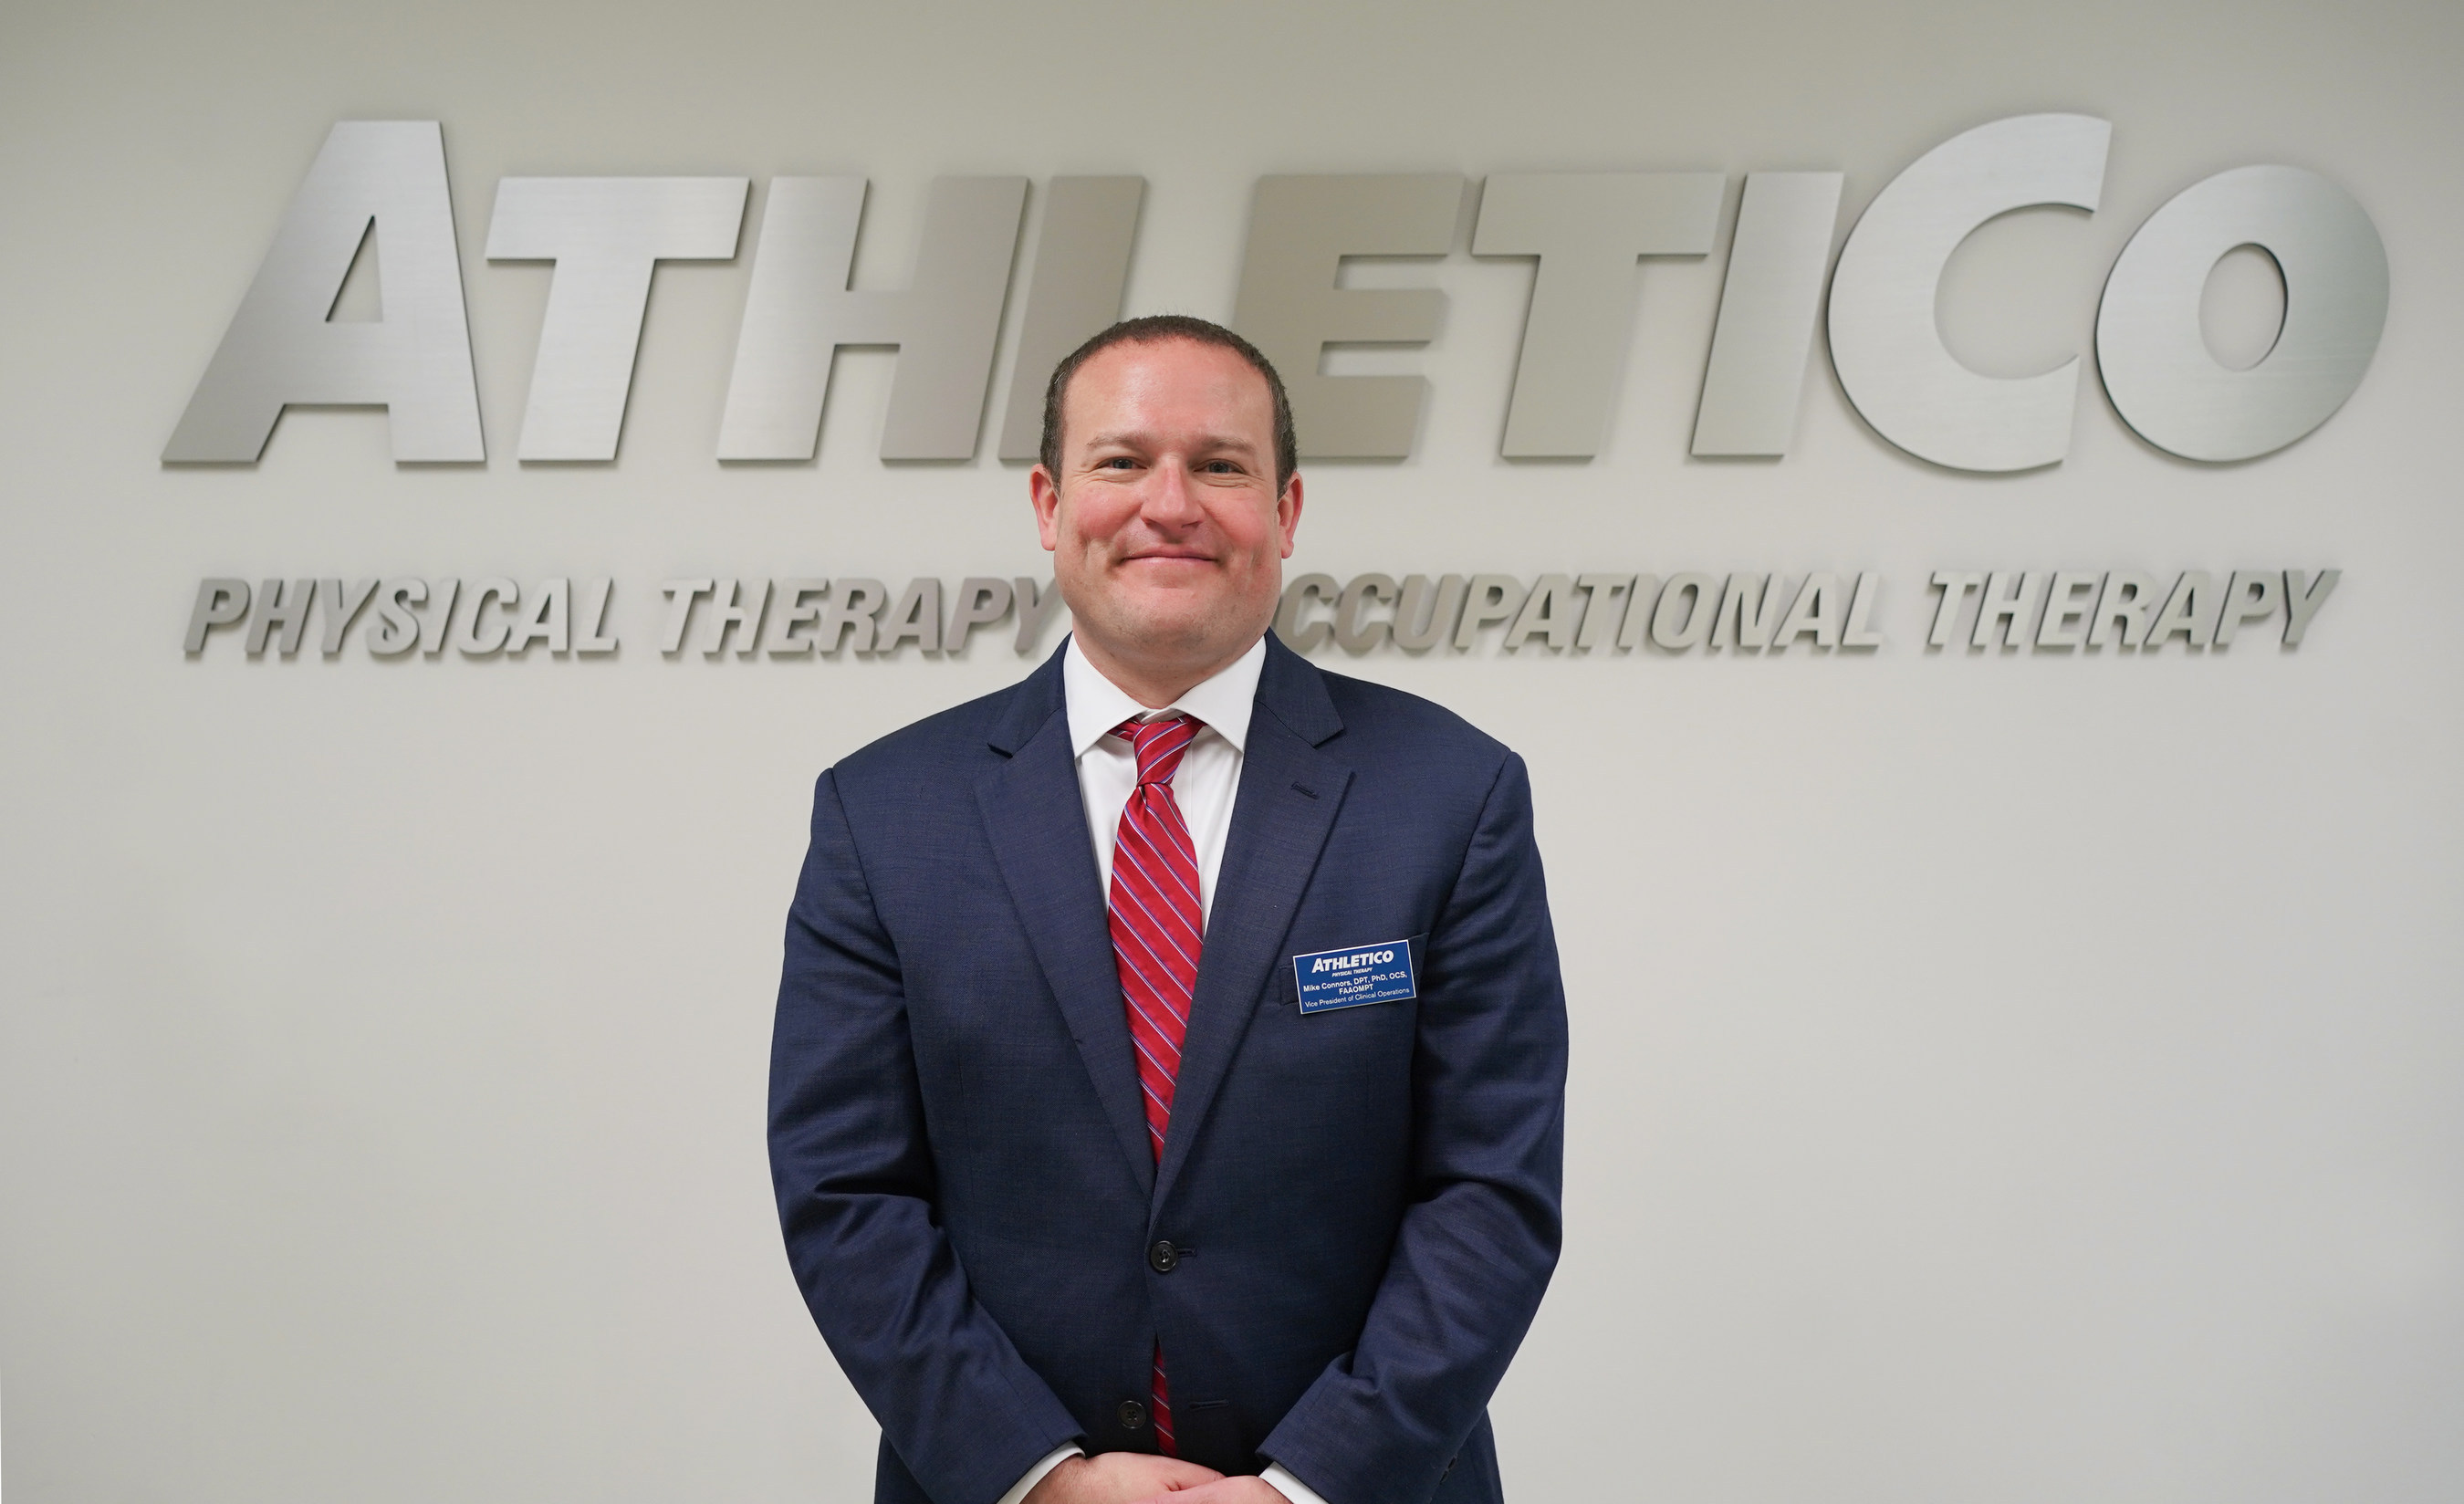 Athletico Physical Therapy Announces